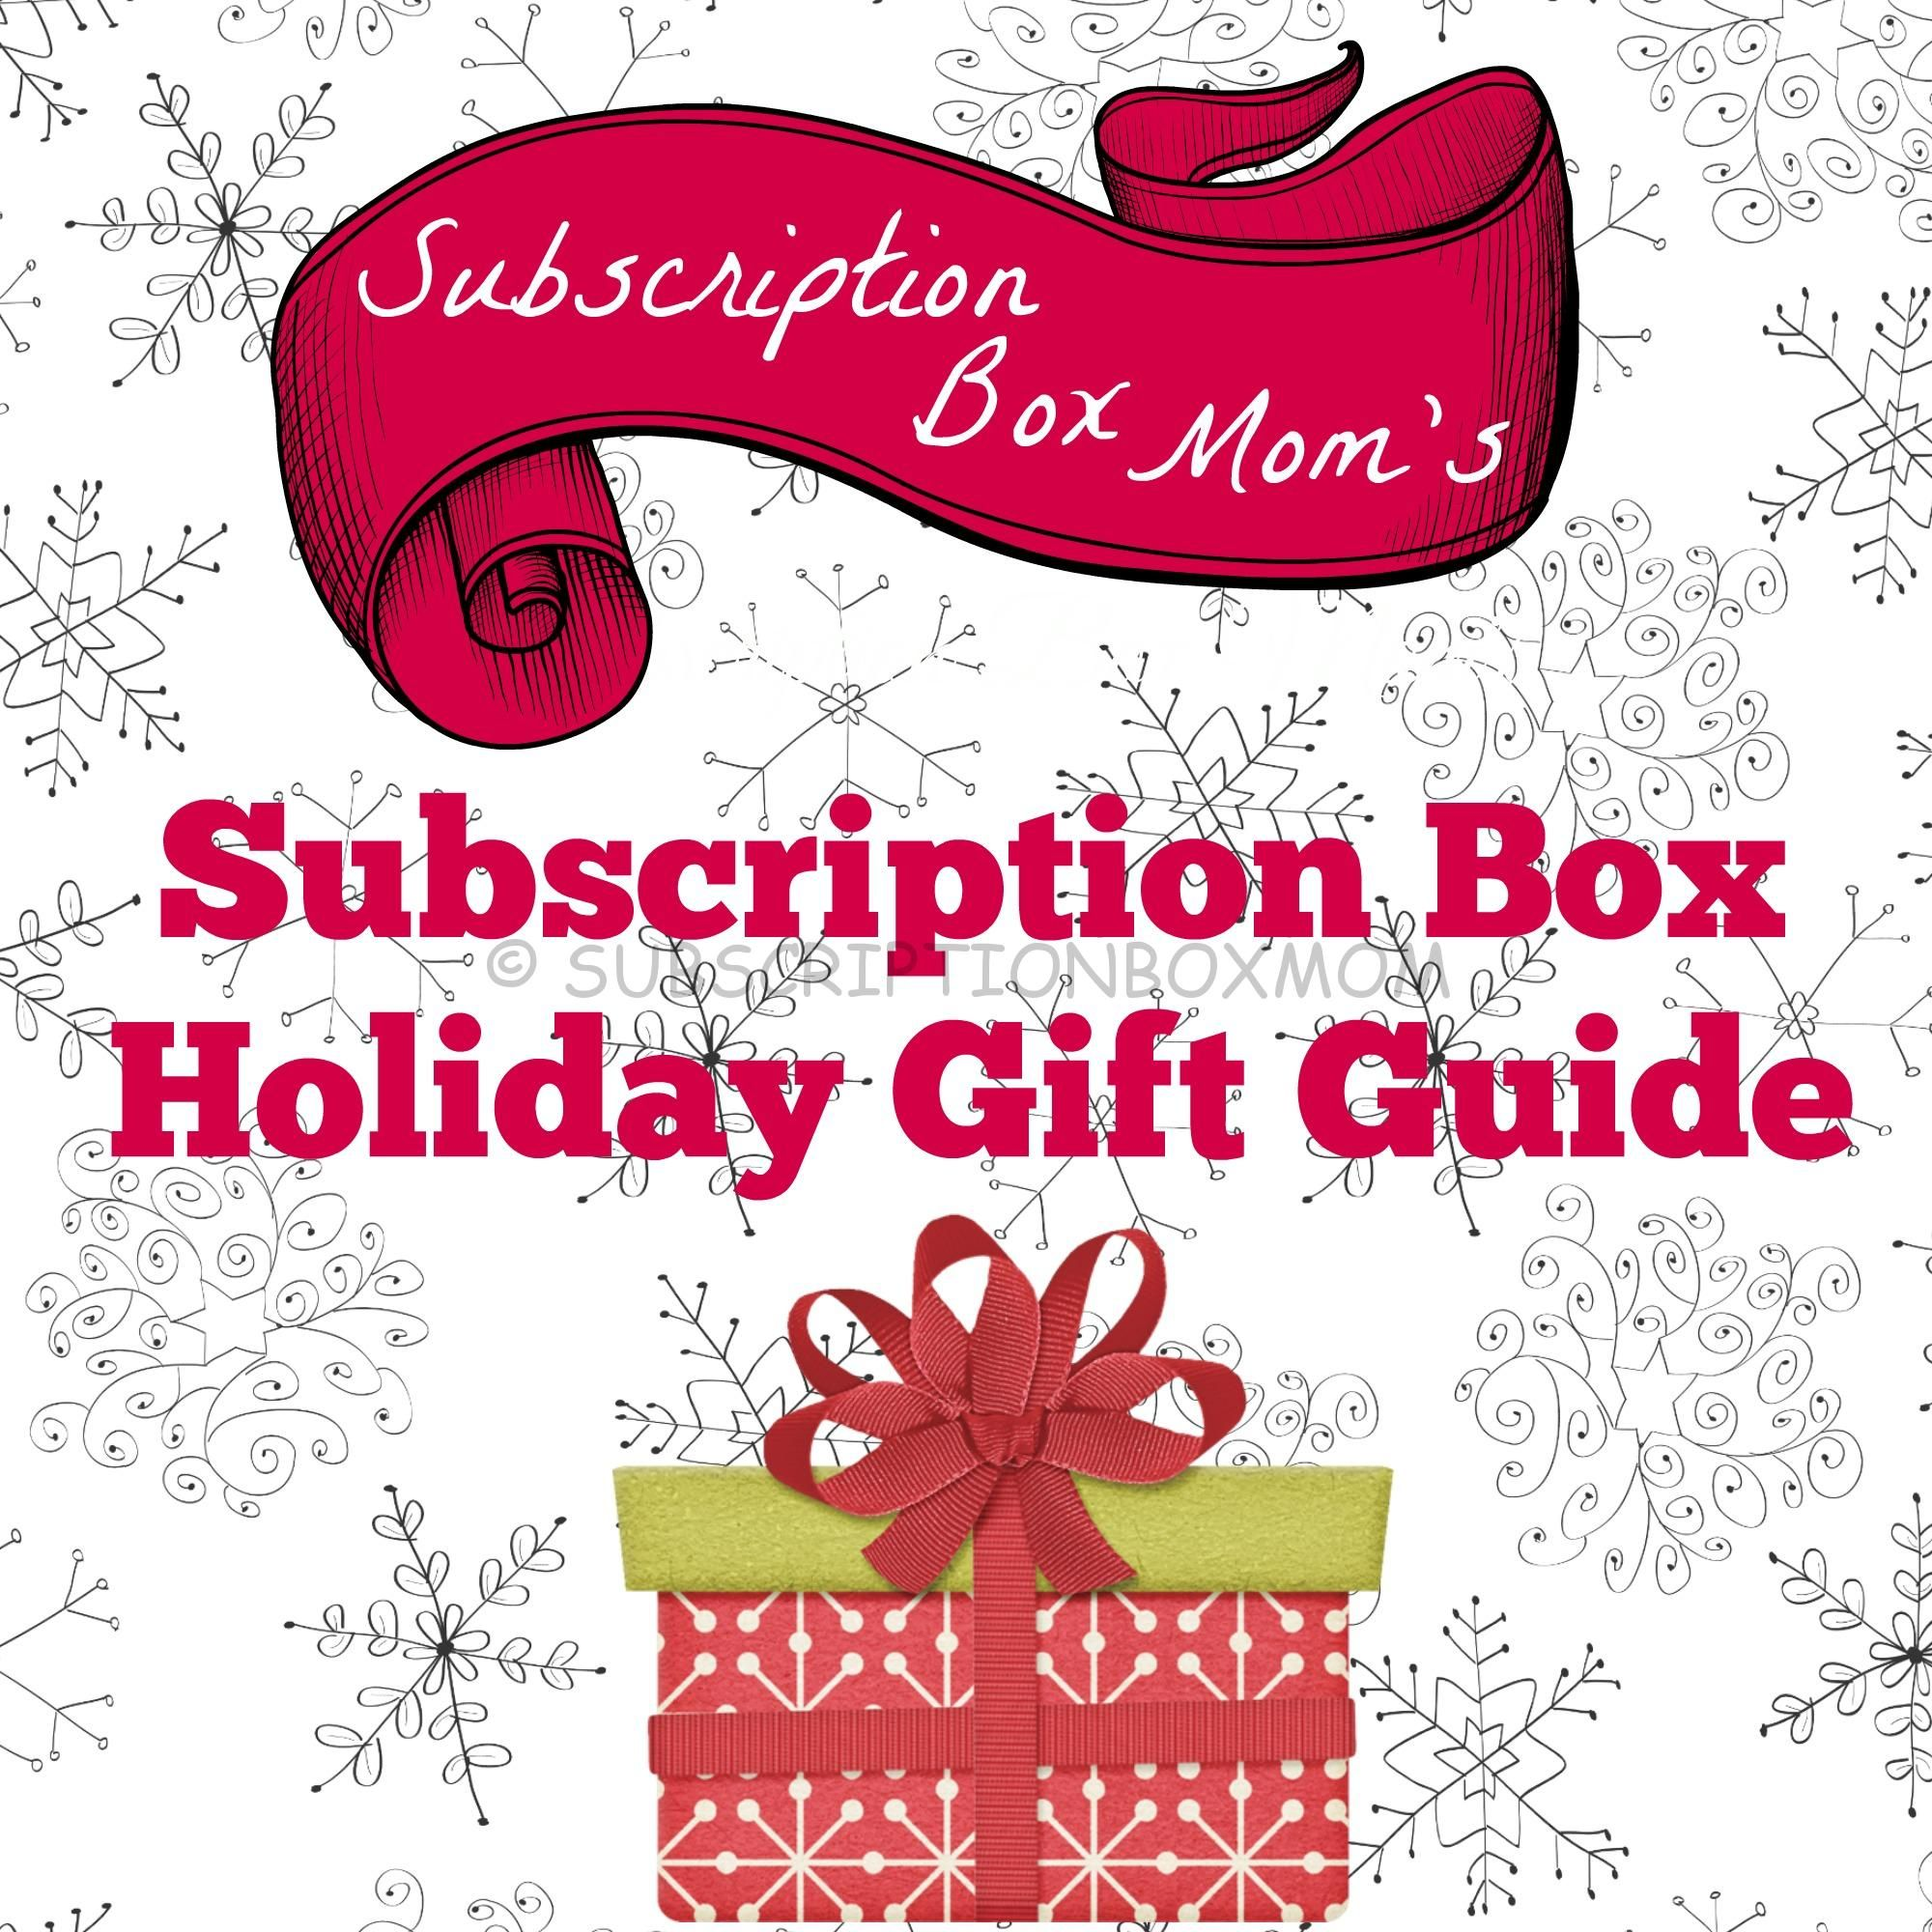 Subscription Box Holiday Gift Guide 2014 - Subscription Box Mom ...